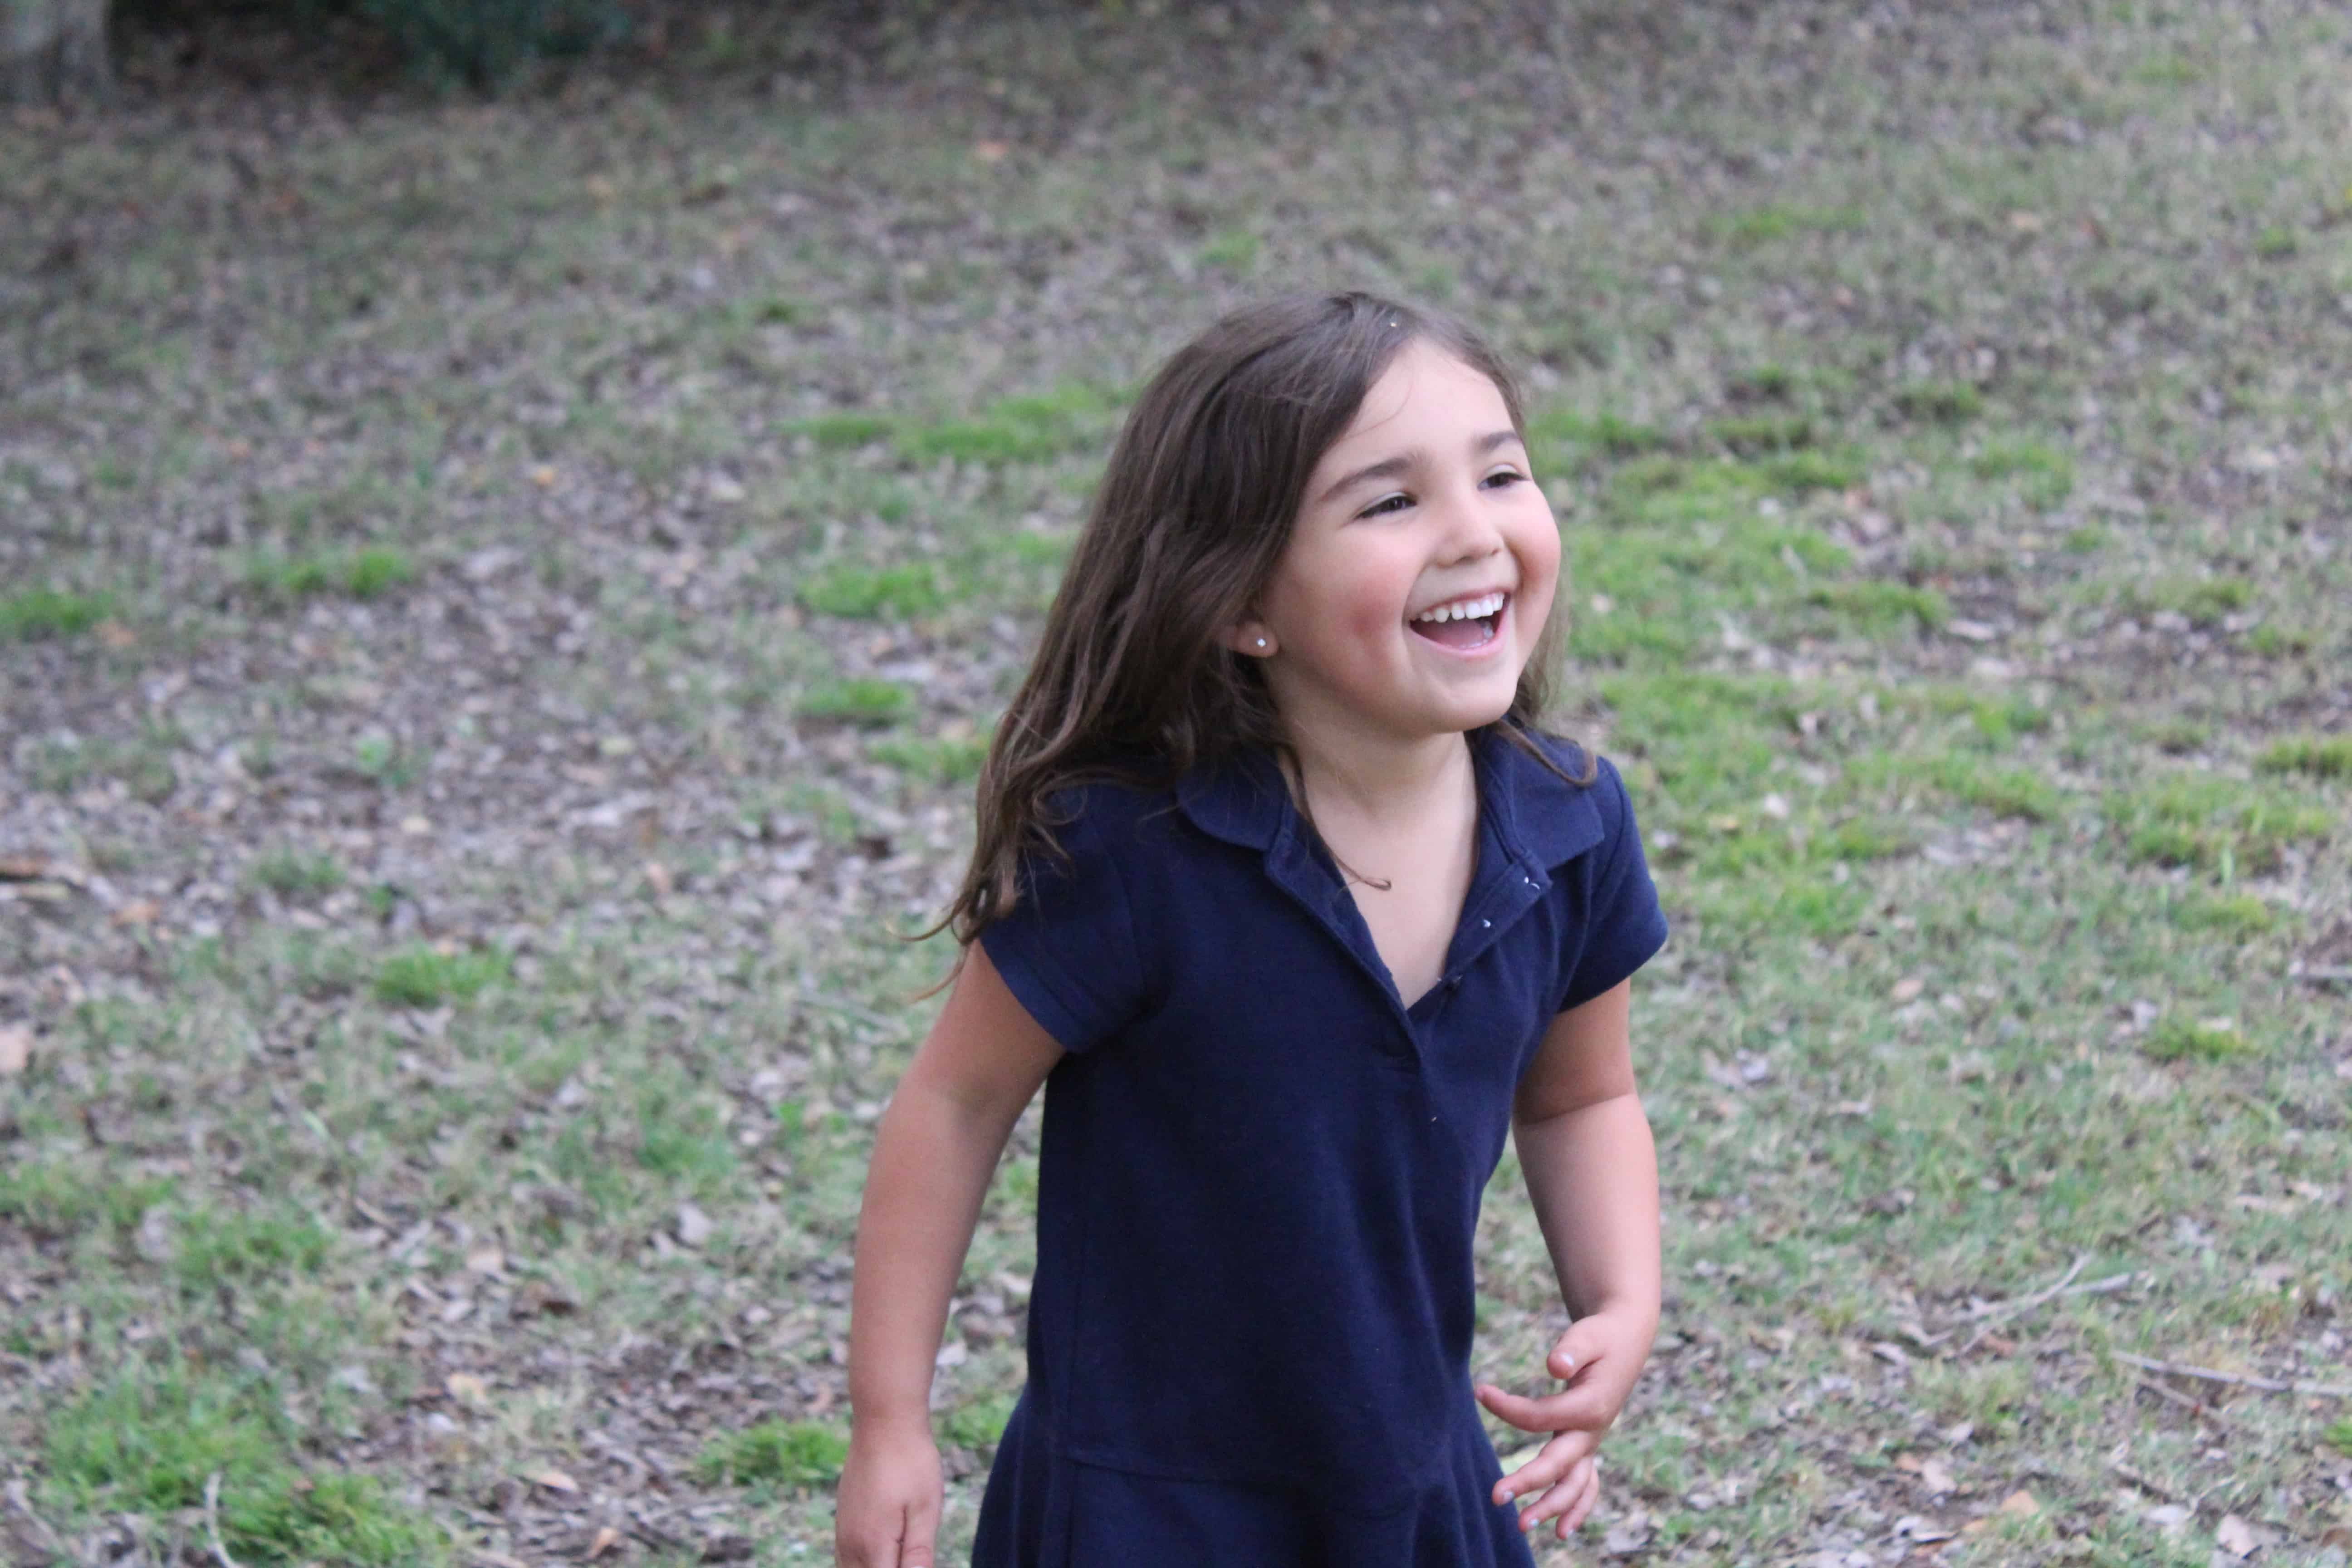 Little girl walking outside a big smile on her face while she plays